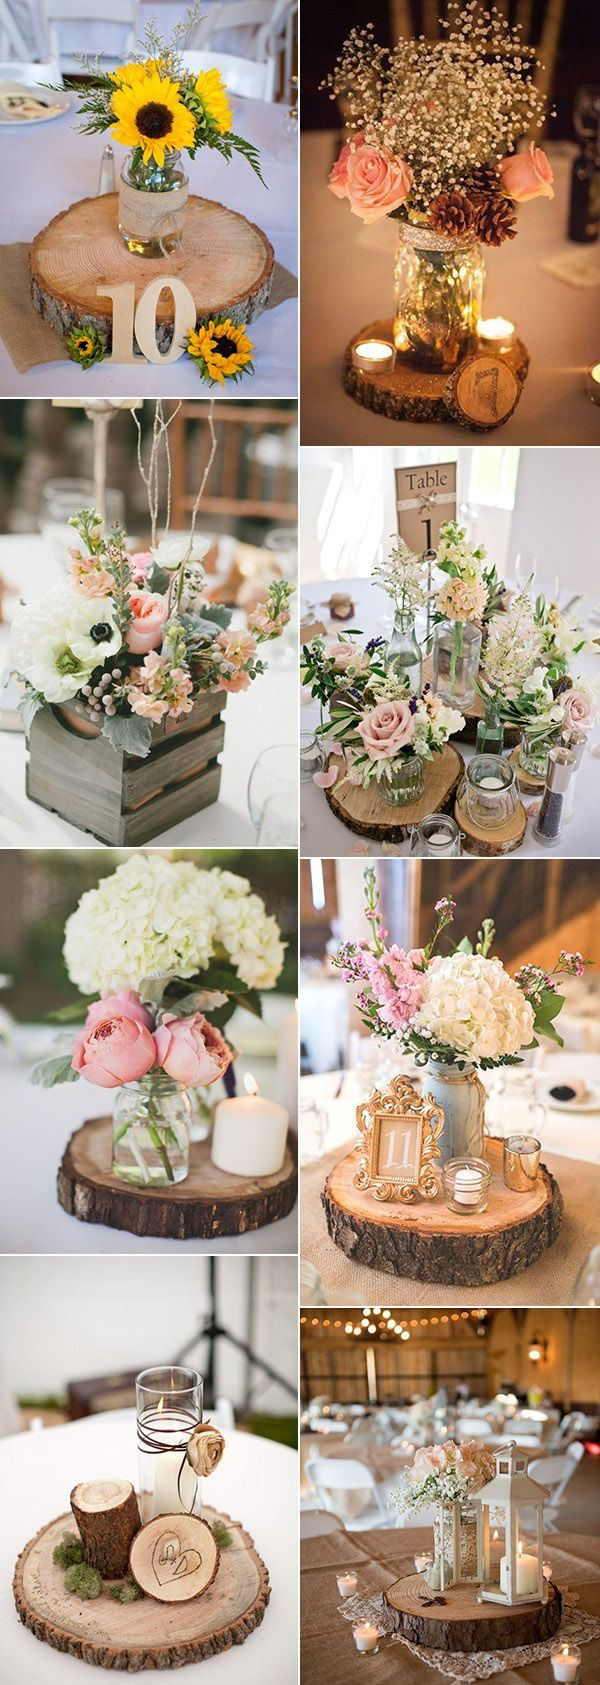 166 best wedding centerpieces images on pinterest country rustic wedding centerpiece ideas with wood junglespirit Images